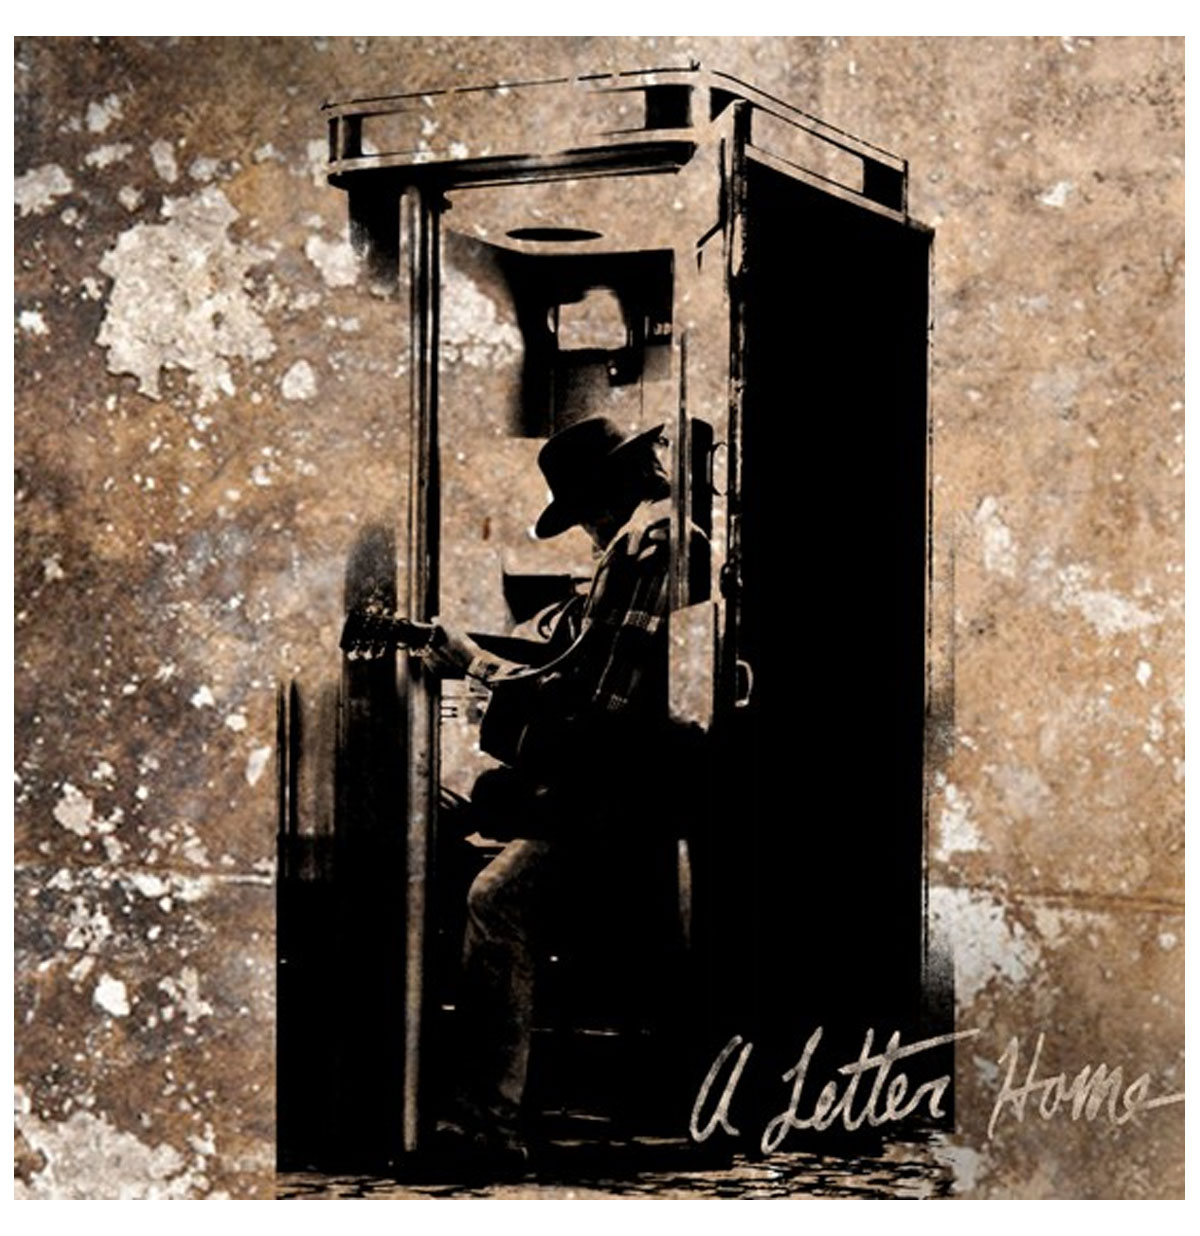 Neil Young - A Letter Home LP